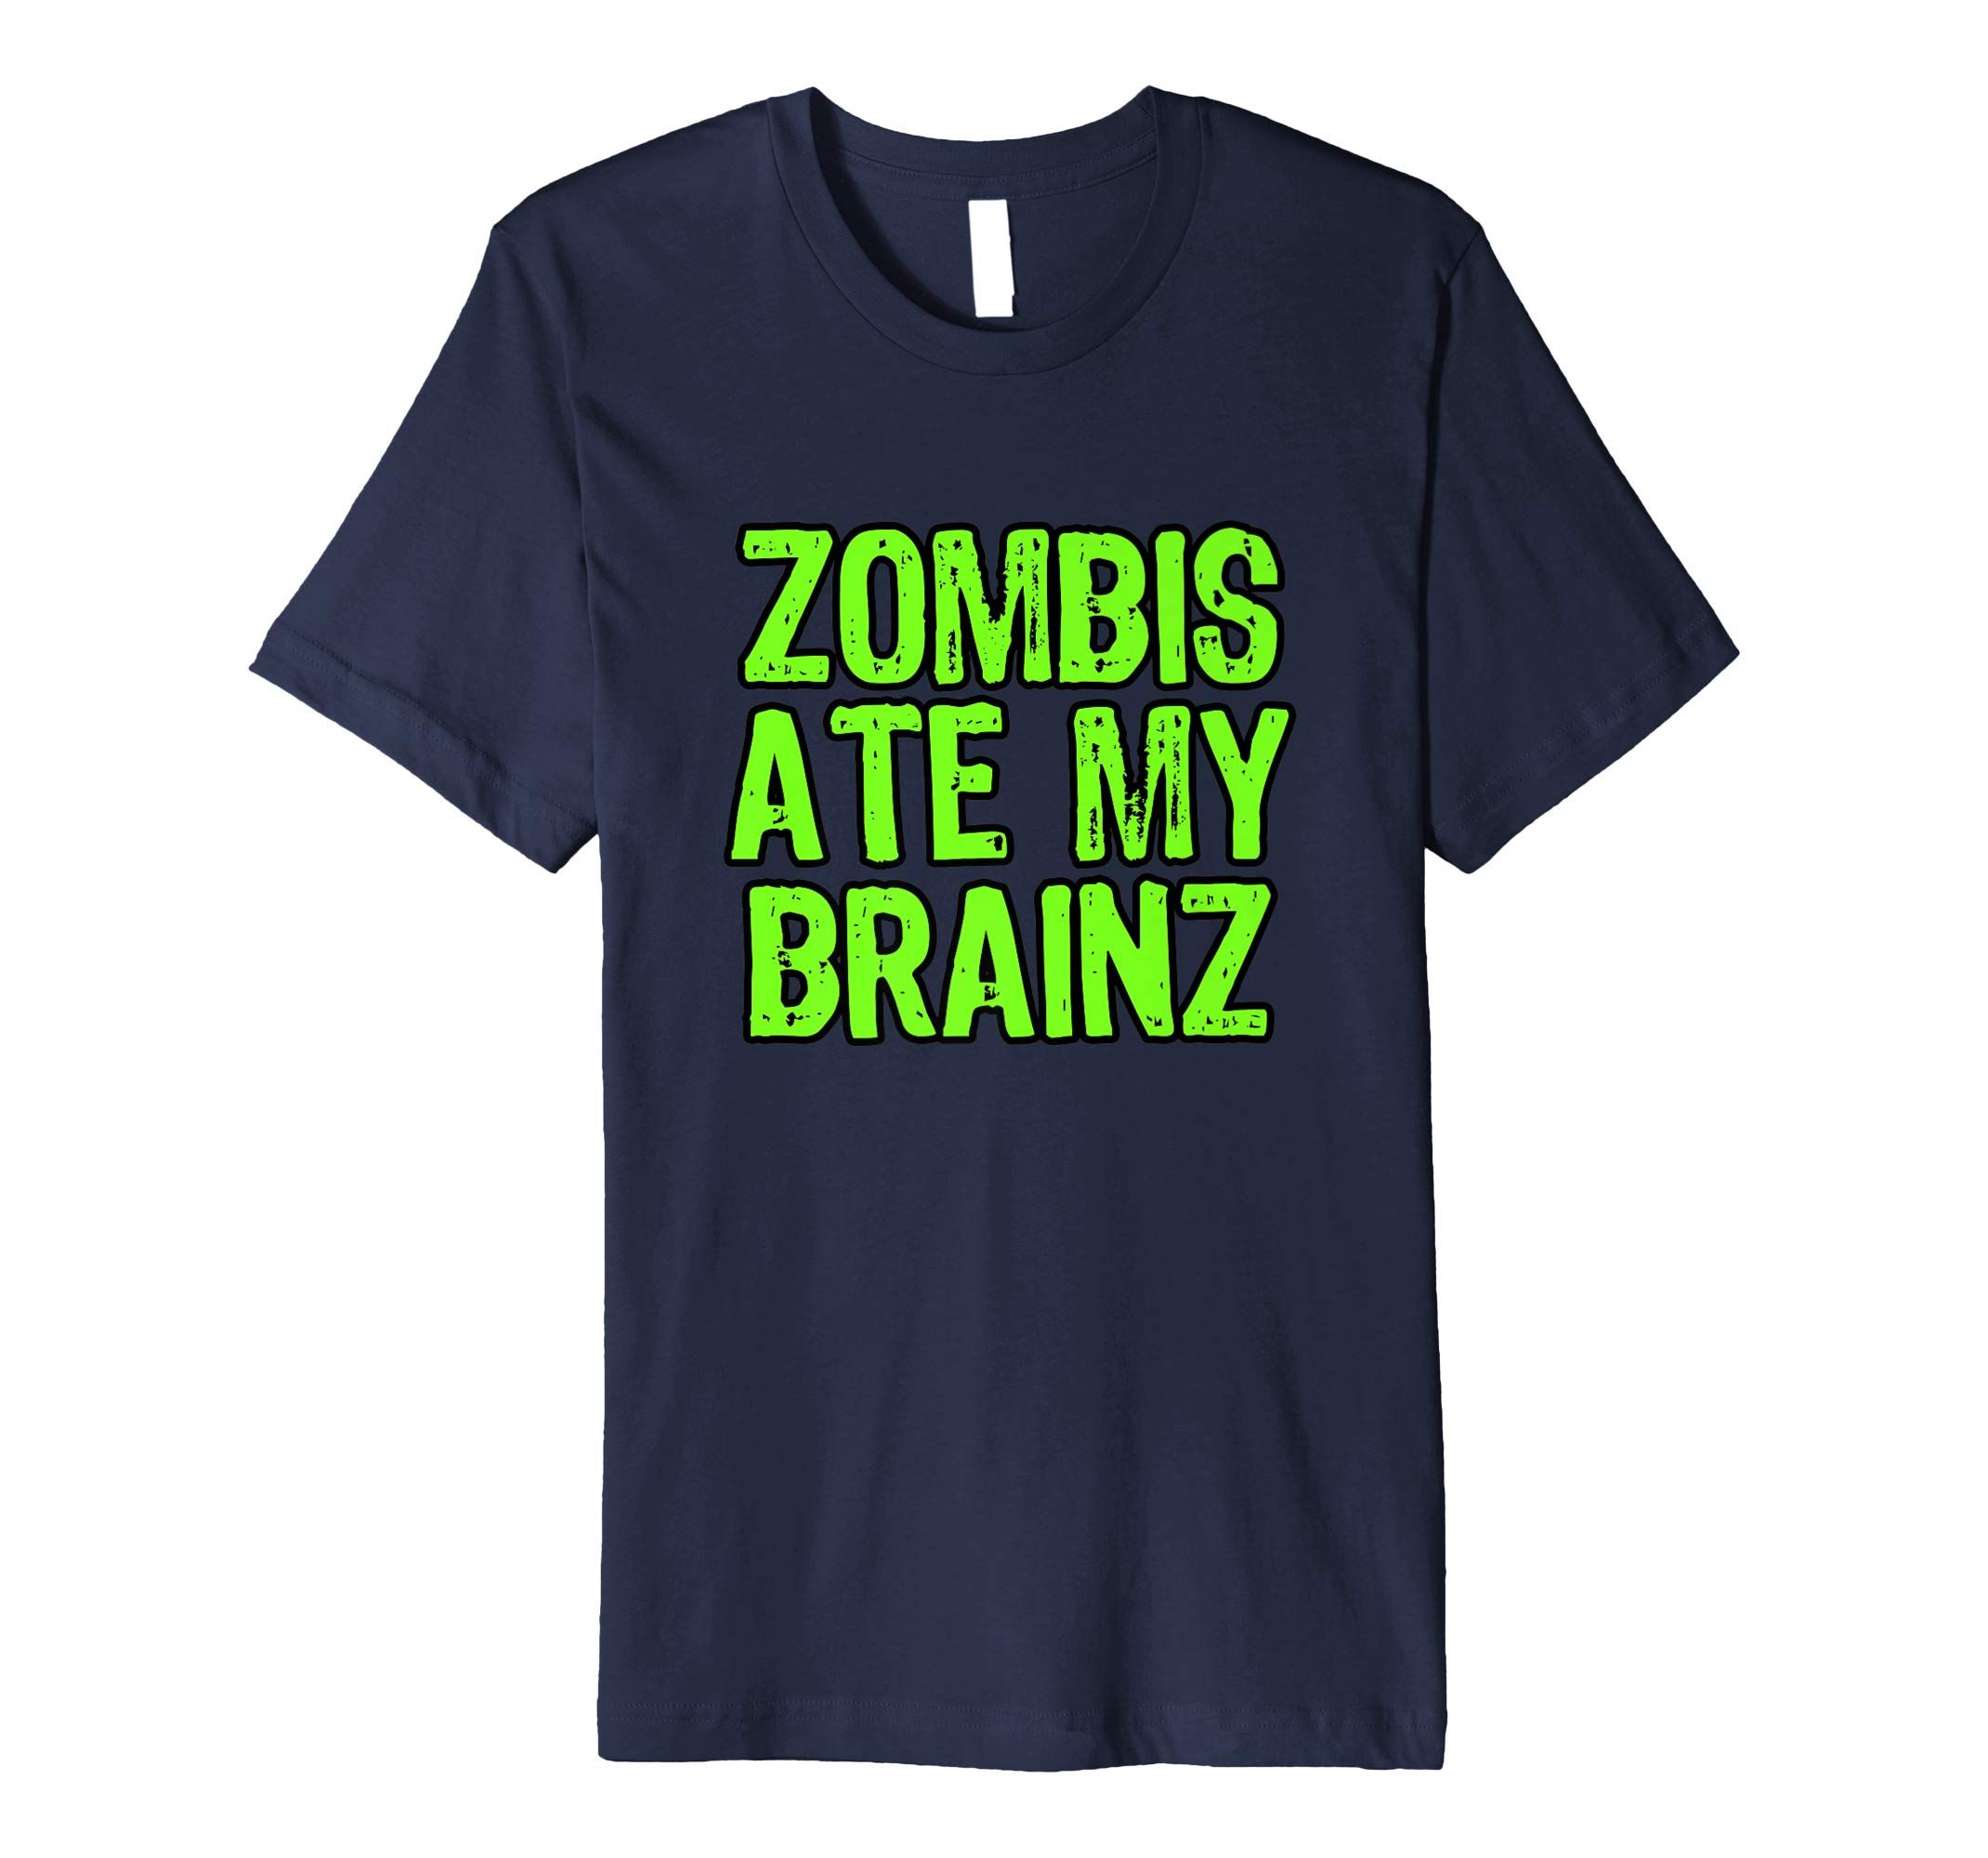 a12077a5740 Funny Humor  Zombies Ate my Brains  Halloween Tee Shirt gift by Scar  Design. In 5 colors and sizes  S- 3XL. For Men-Women-Youth. Price  £17.99.